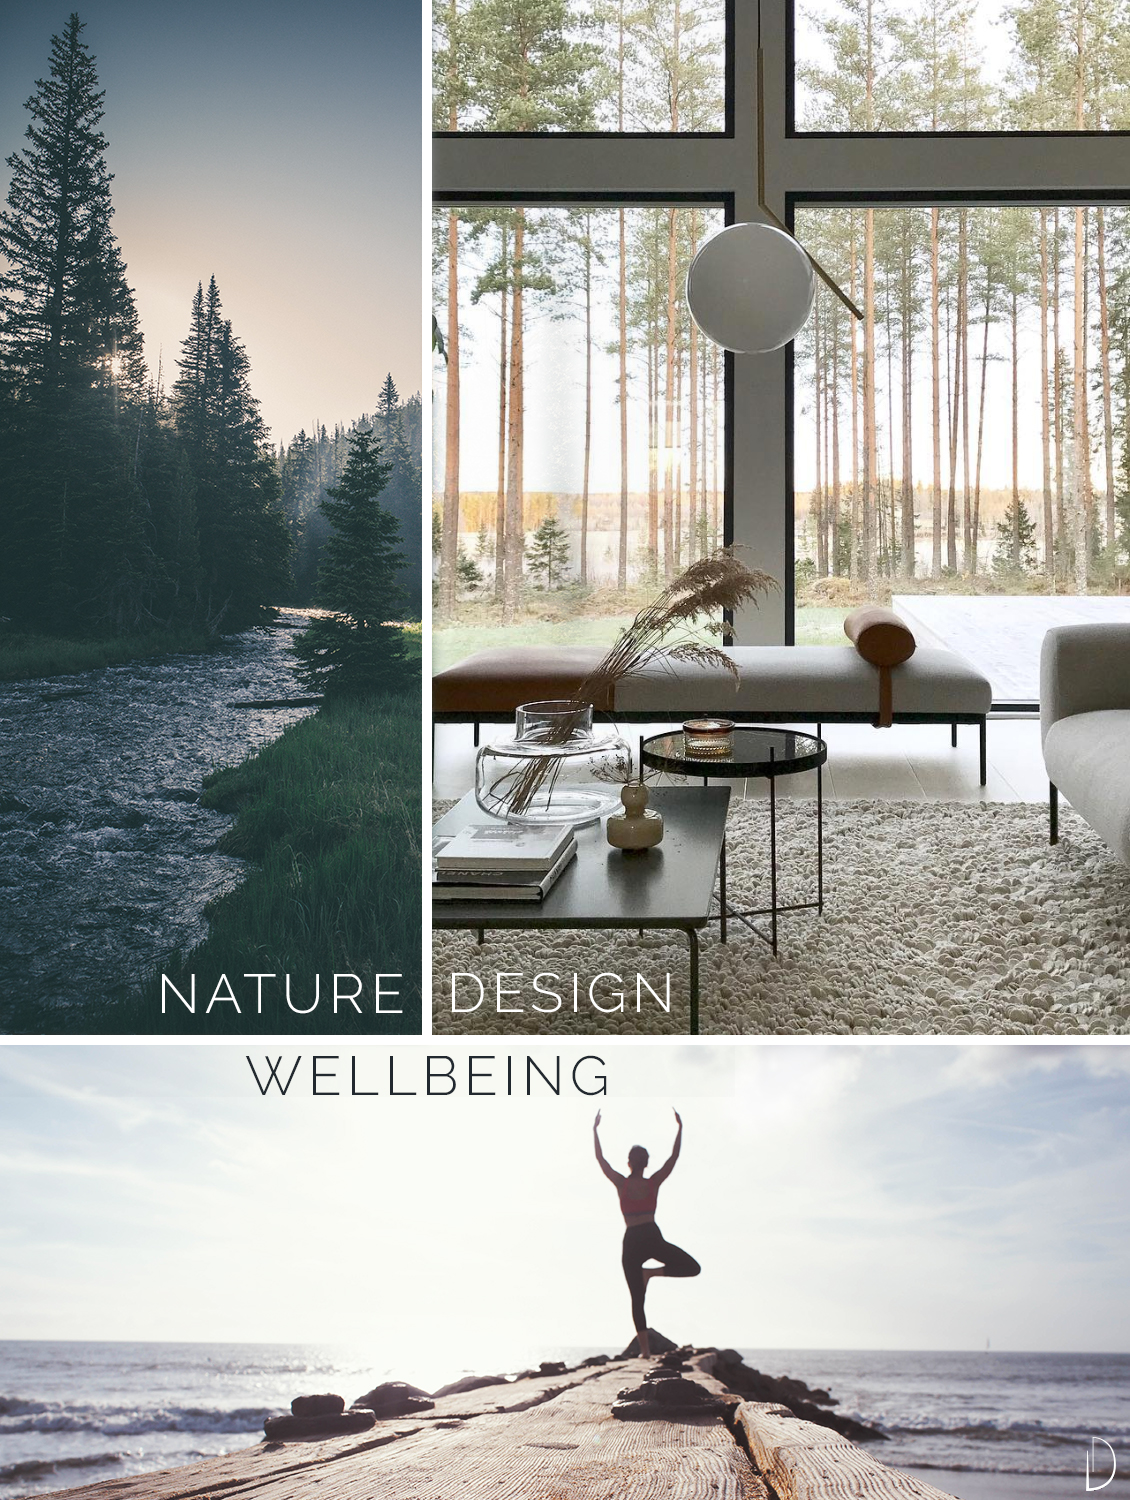 Biophilic moodboard showing the relationship between nature (a forest), wellbeing (a girl doing yoga in front of a lake) and biophilic interior design (a living room with huge windows looking outdoors).